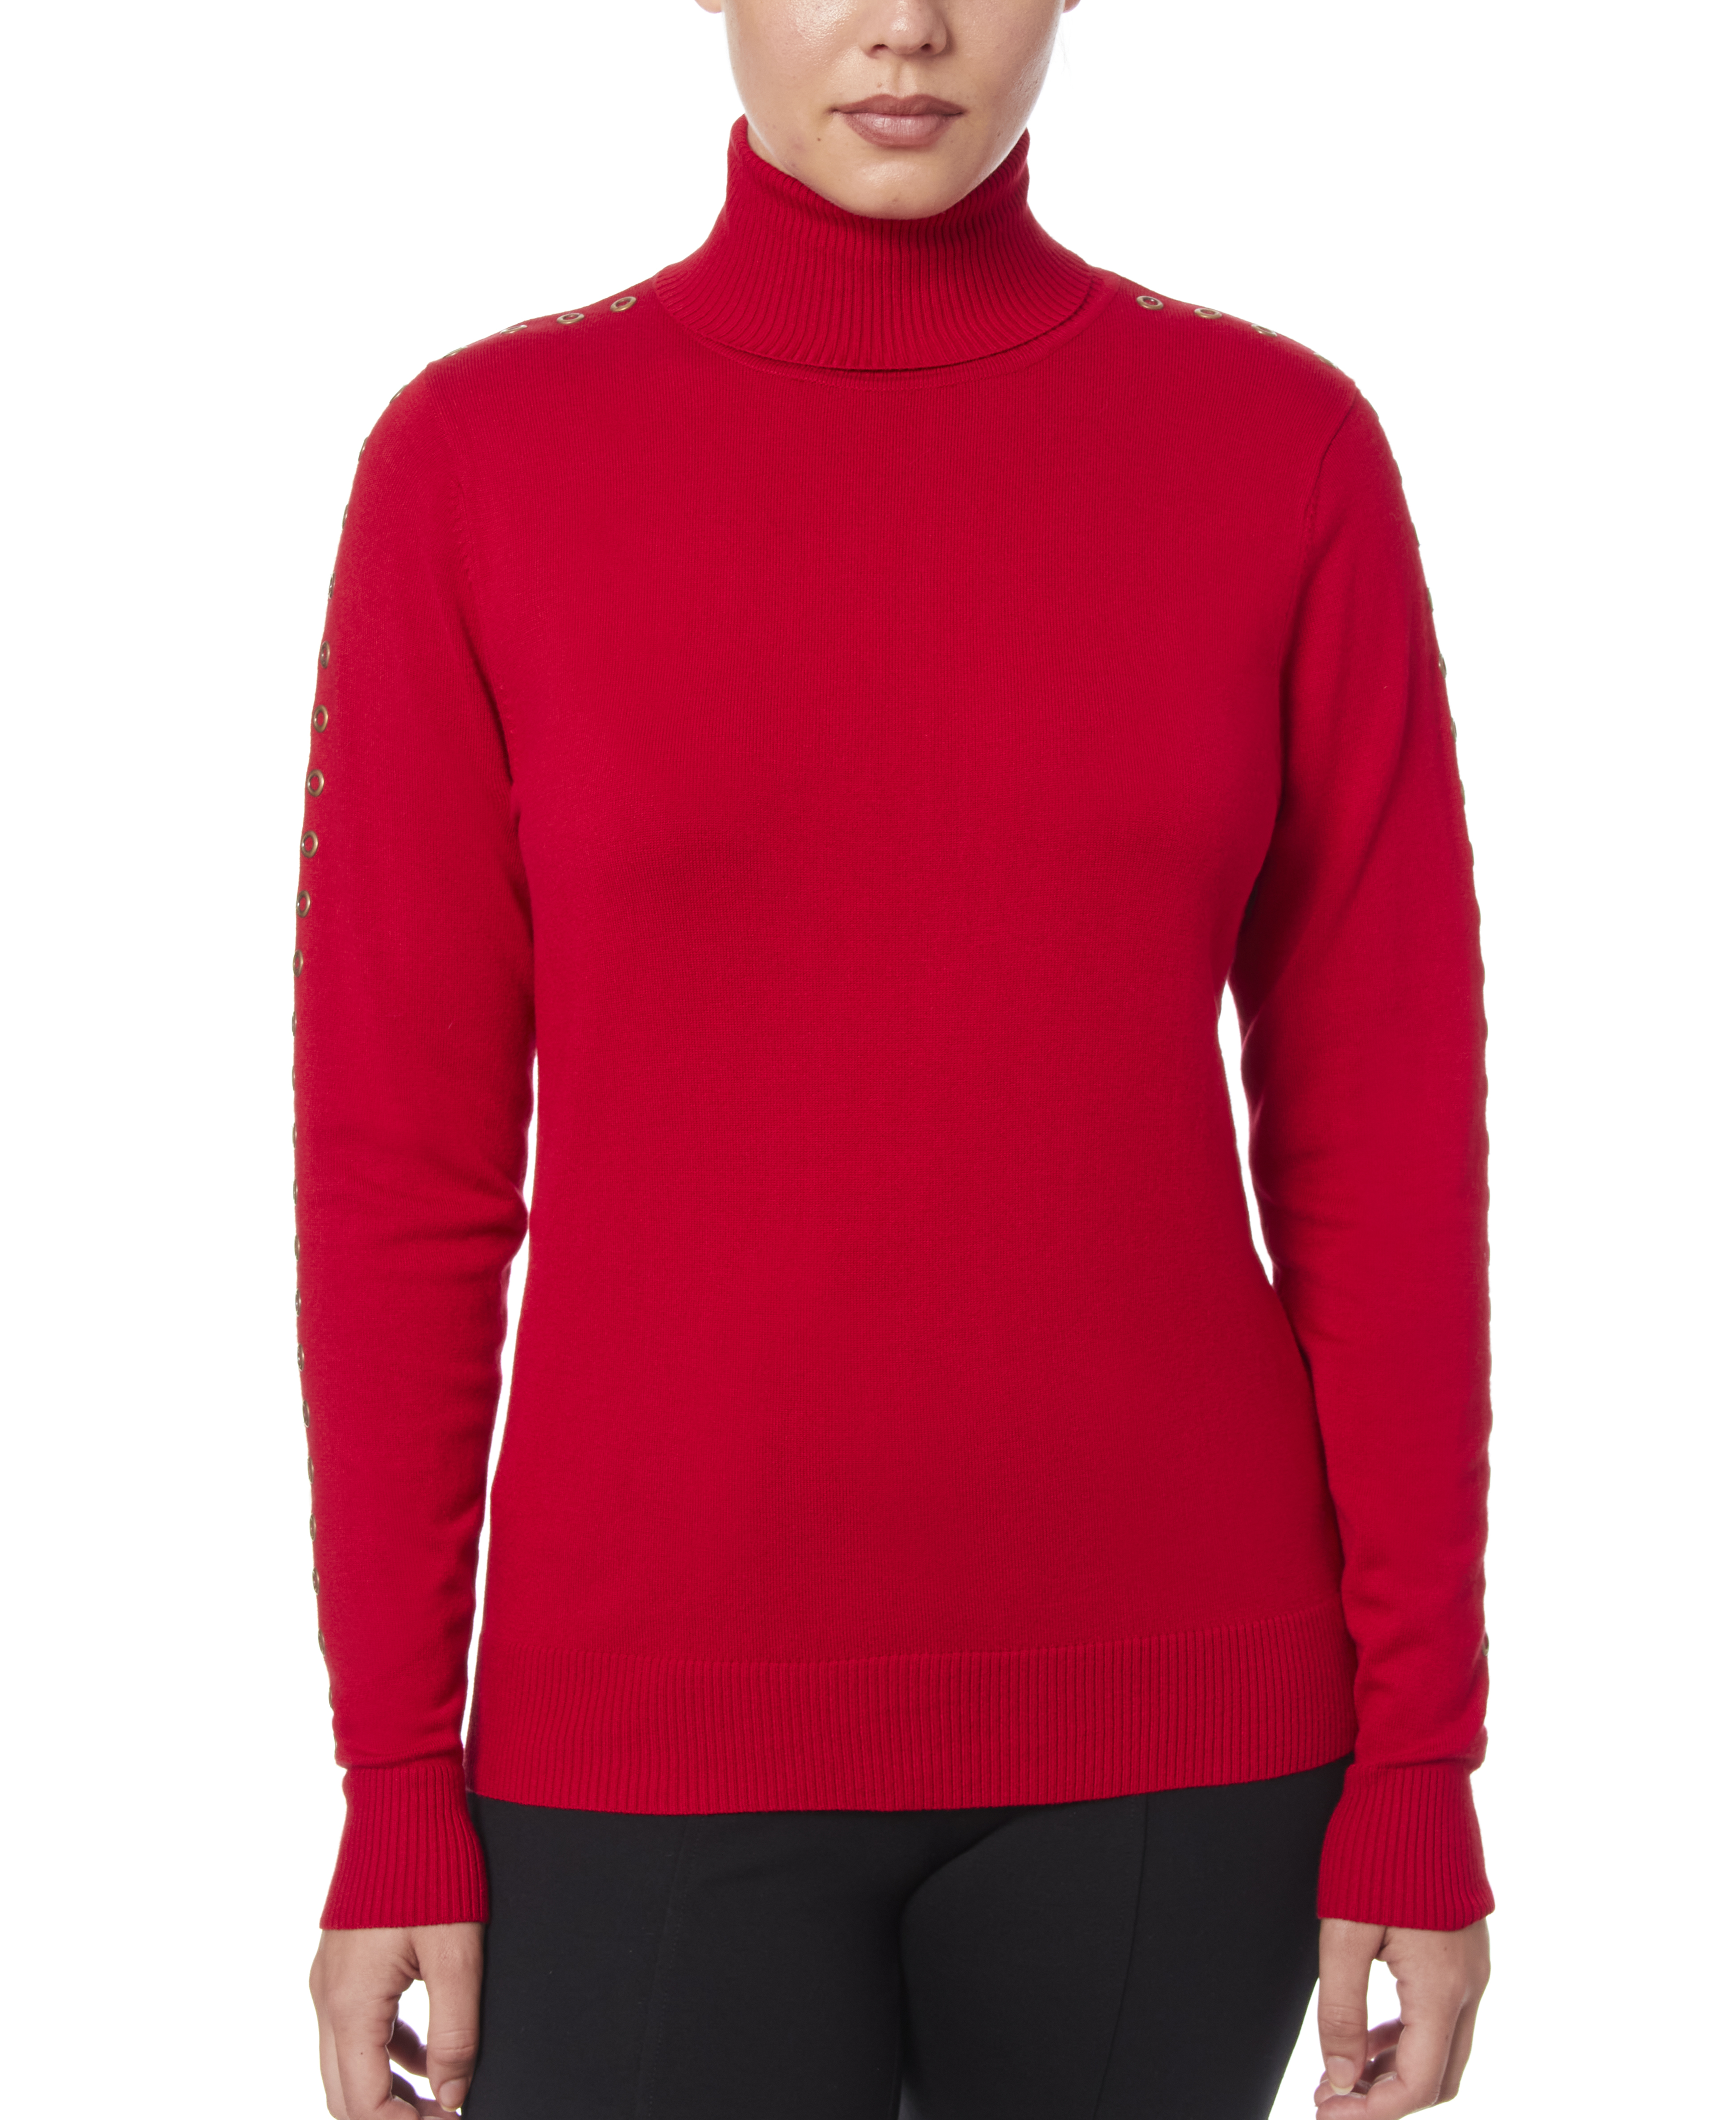 Solid Turtleneck with Detailed Sleeve in Scarlet